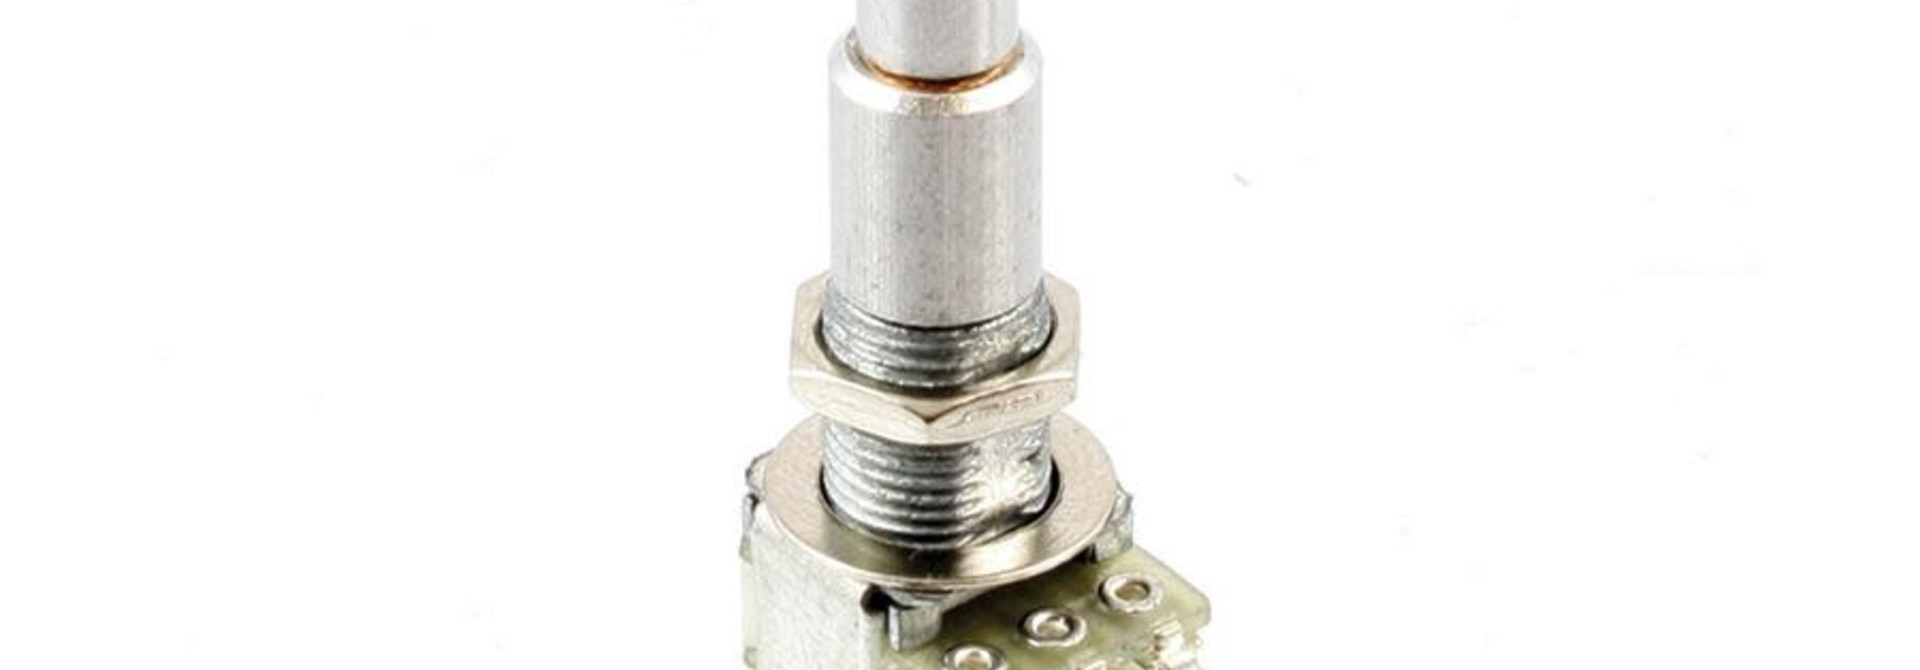 Allparts 500K Stacked Concentric Pot EP-4486-000